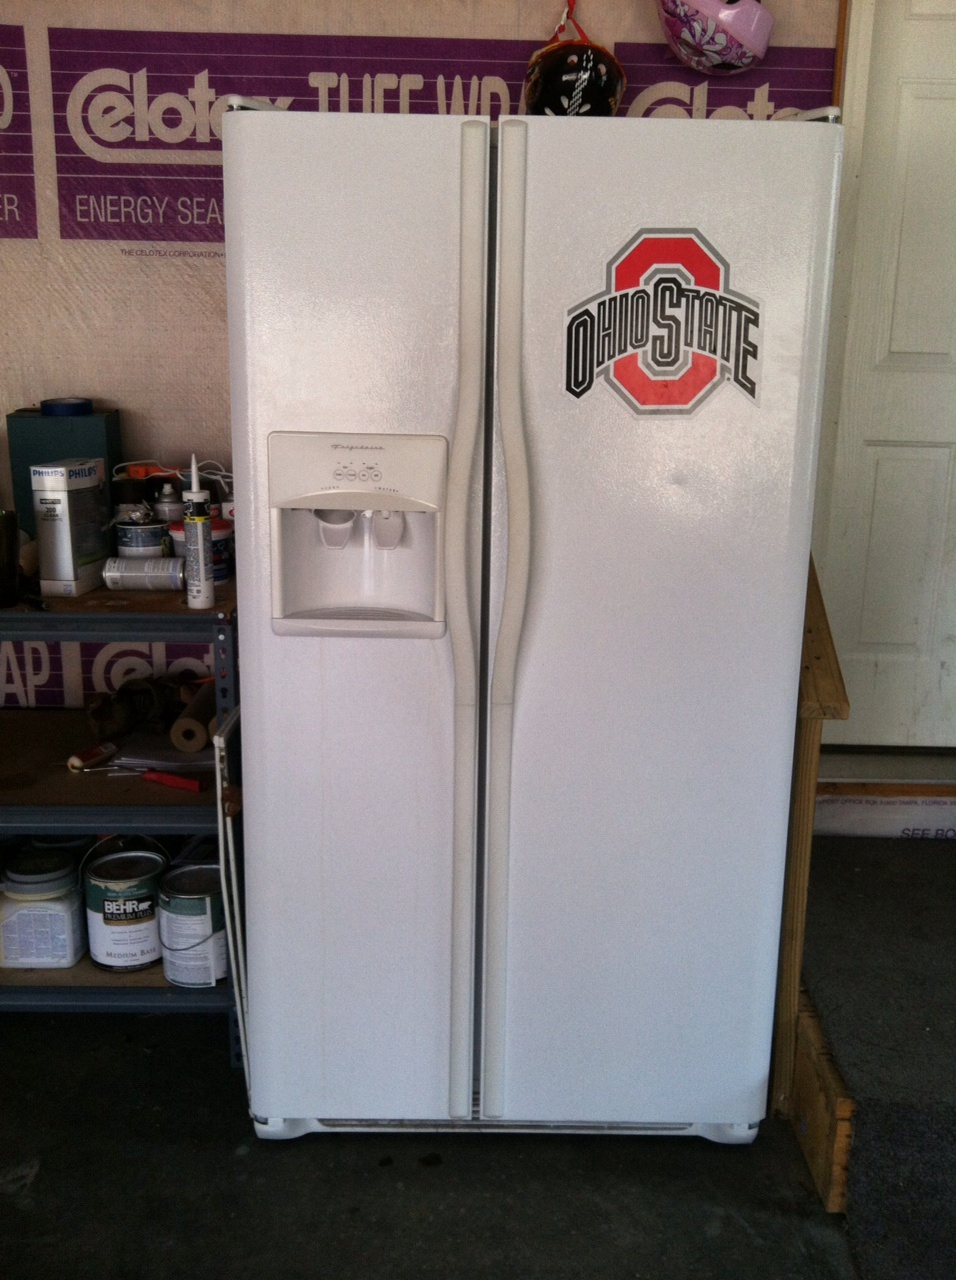 Garage Fridge: Brittany, Herself